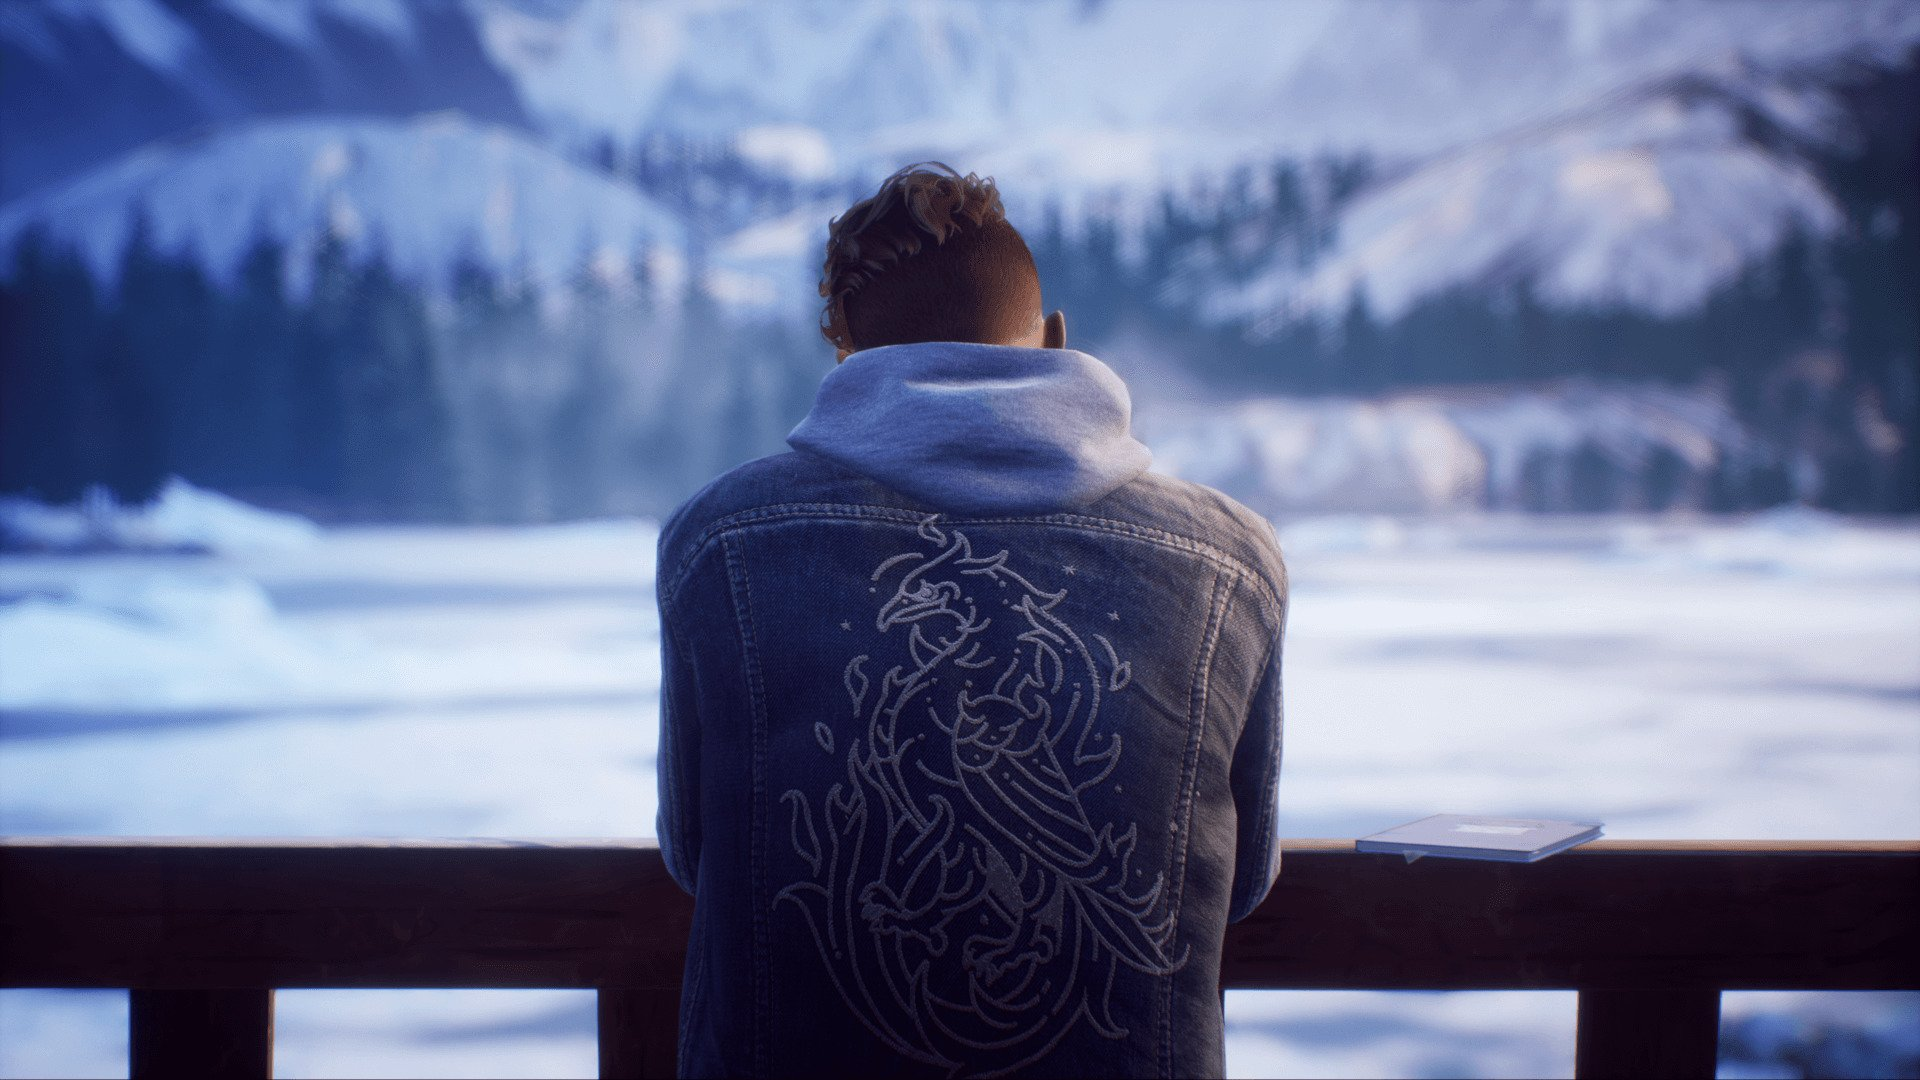 Dontnod's new narrative Tell Me Why shuns